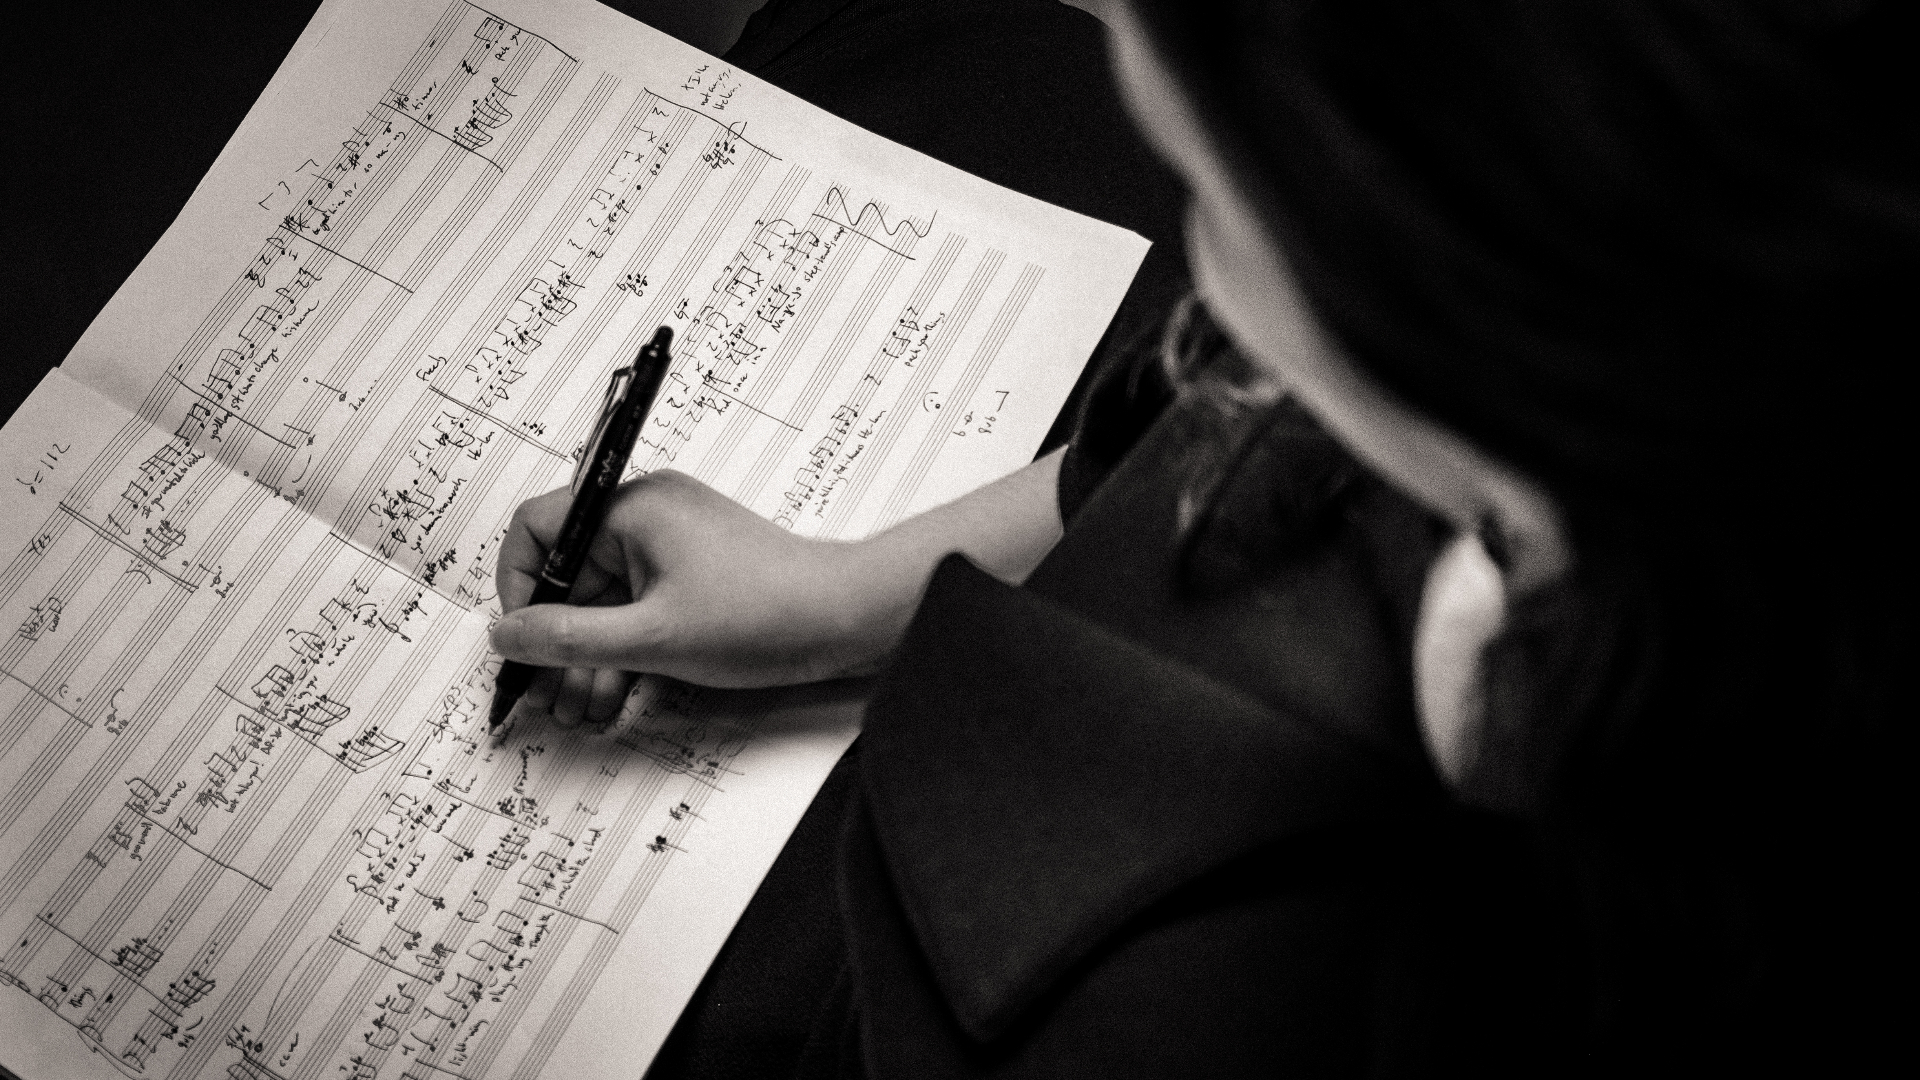 Abstract photograph of Jessica Hunt's hand as she writes music notation